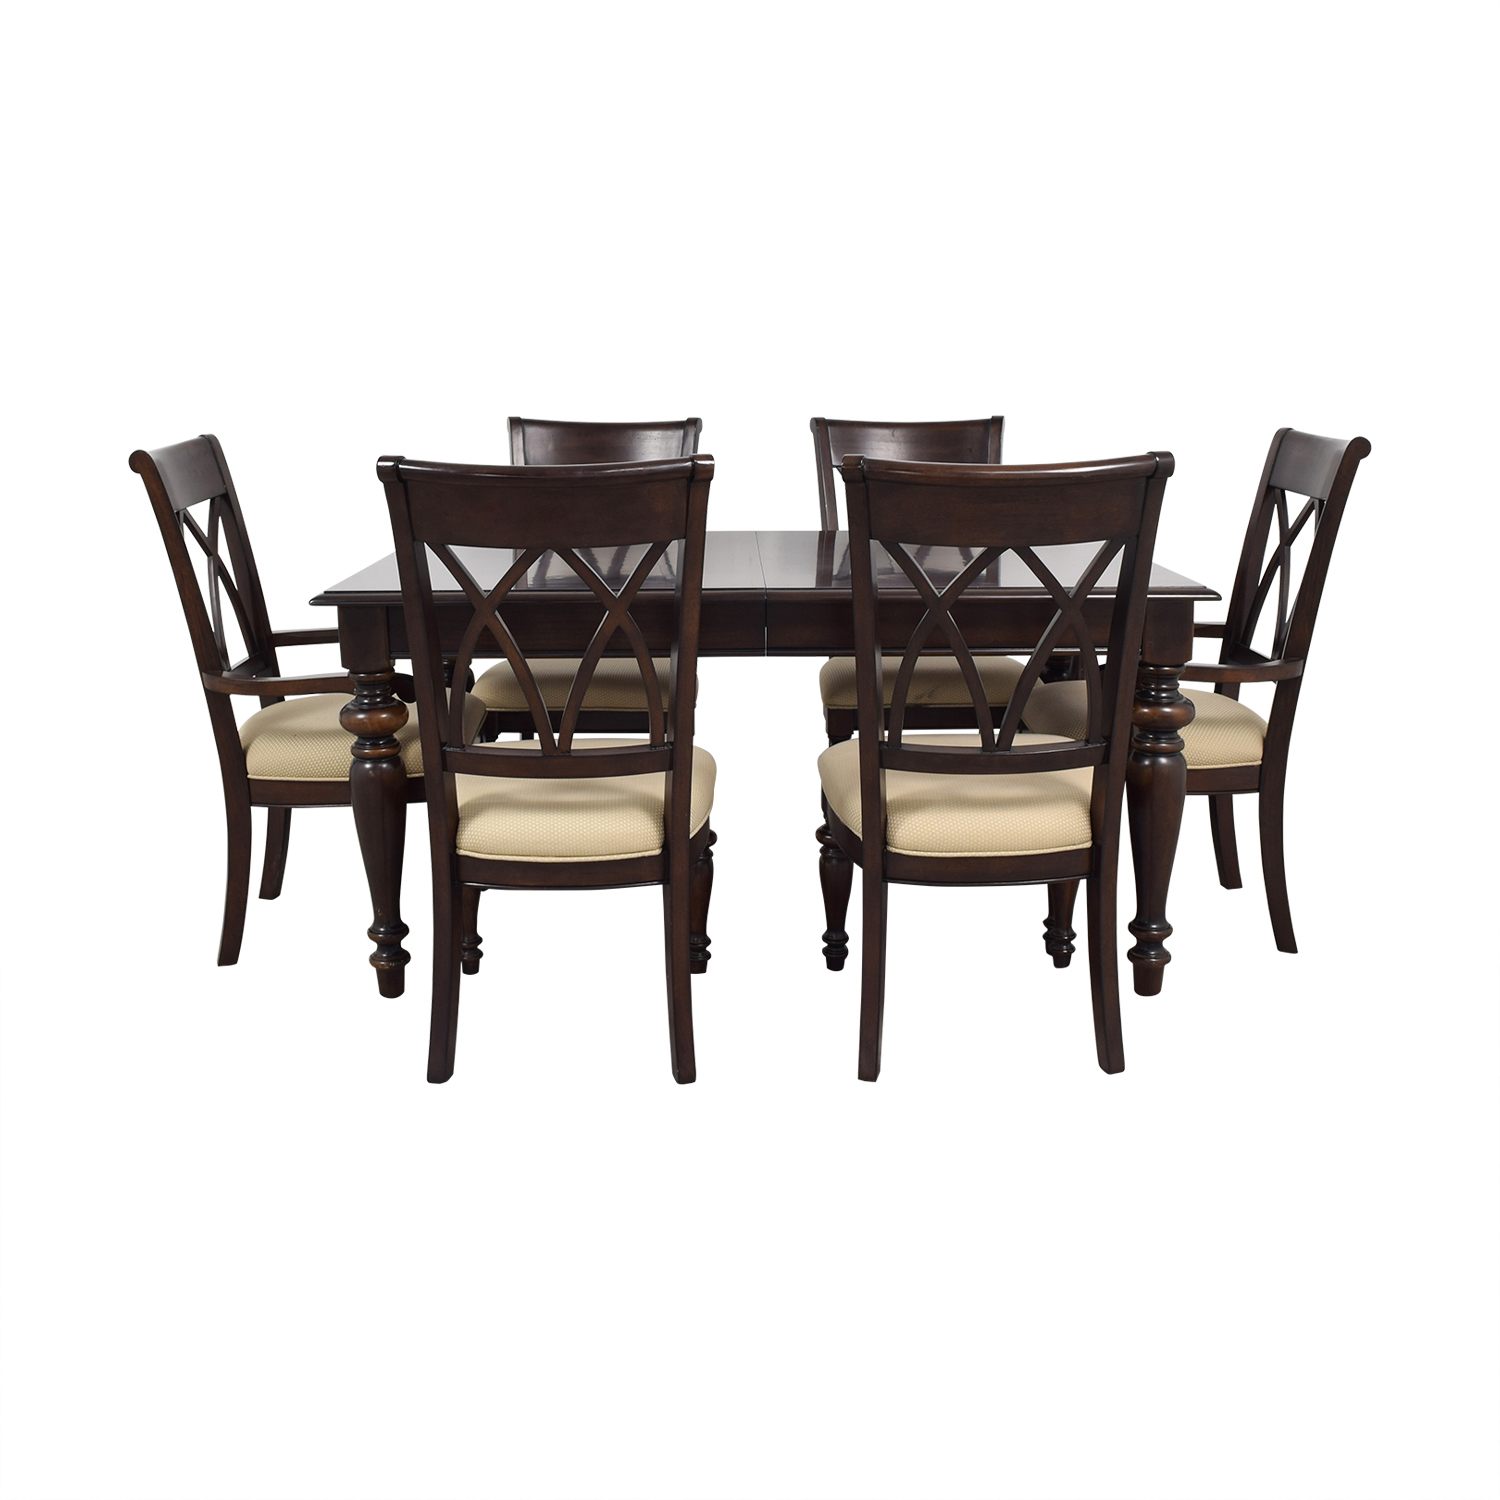 buy Macy's Macy's Extendable Dining Set online